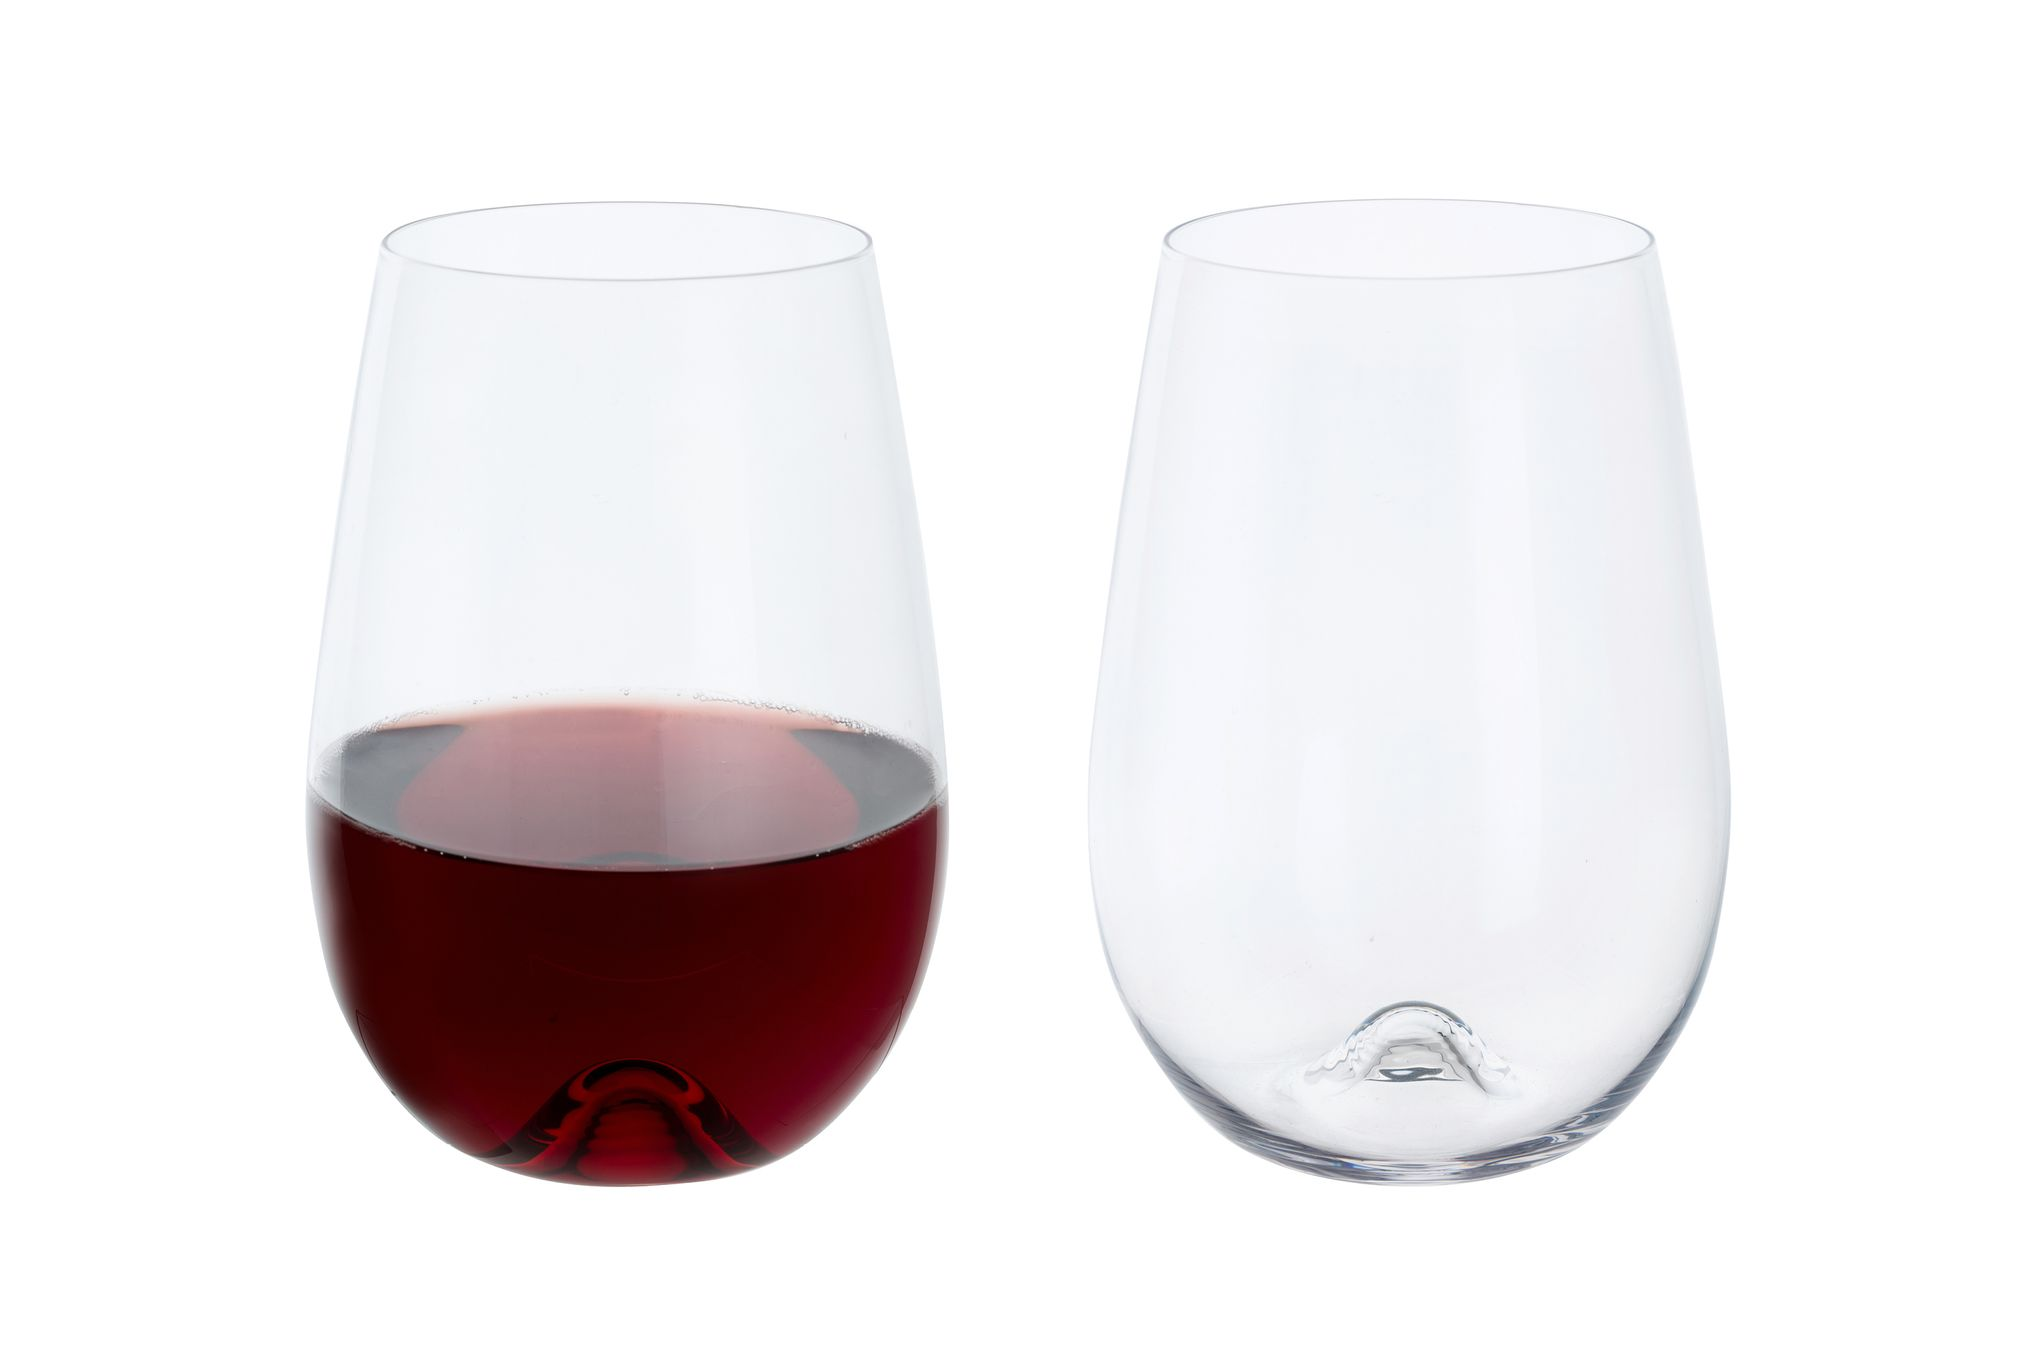 Dartington Crystal Wine & Bar Pair of Red Wine Glasses Stemless 700ml thumb 1